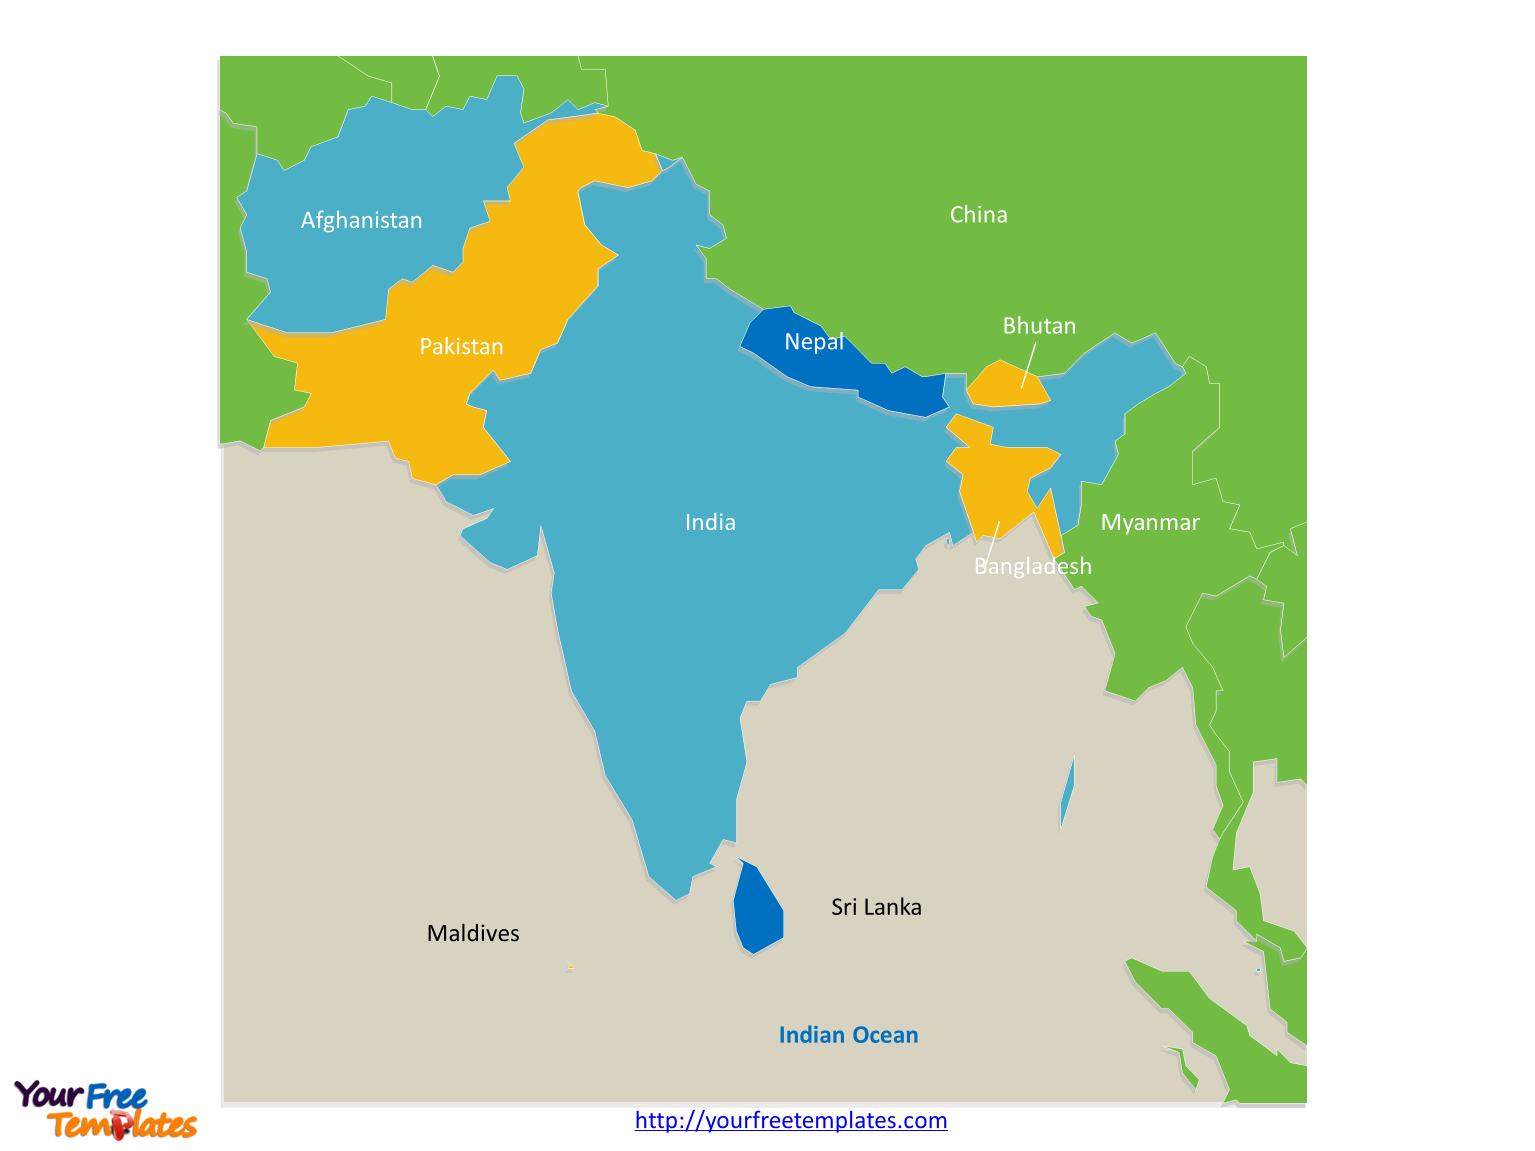 Map Of Asia Template.South Asia Map Free Templates Free Powerpoint Templates